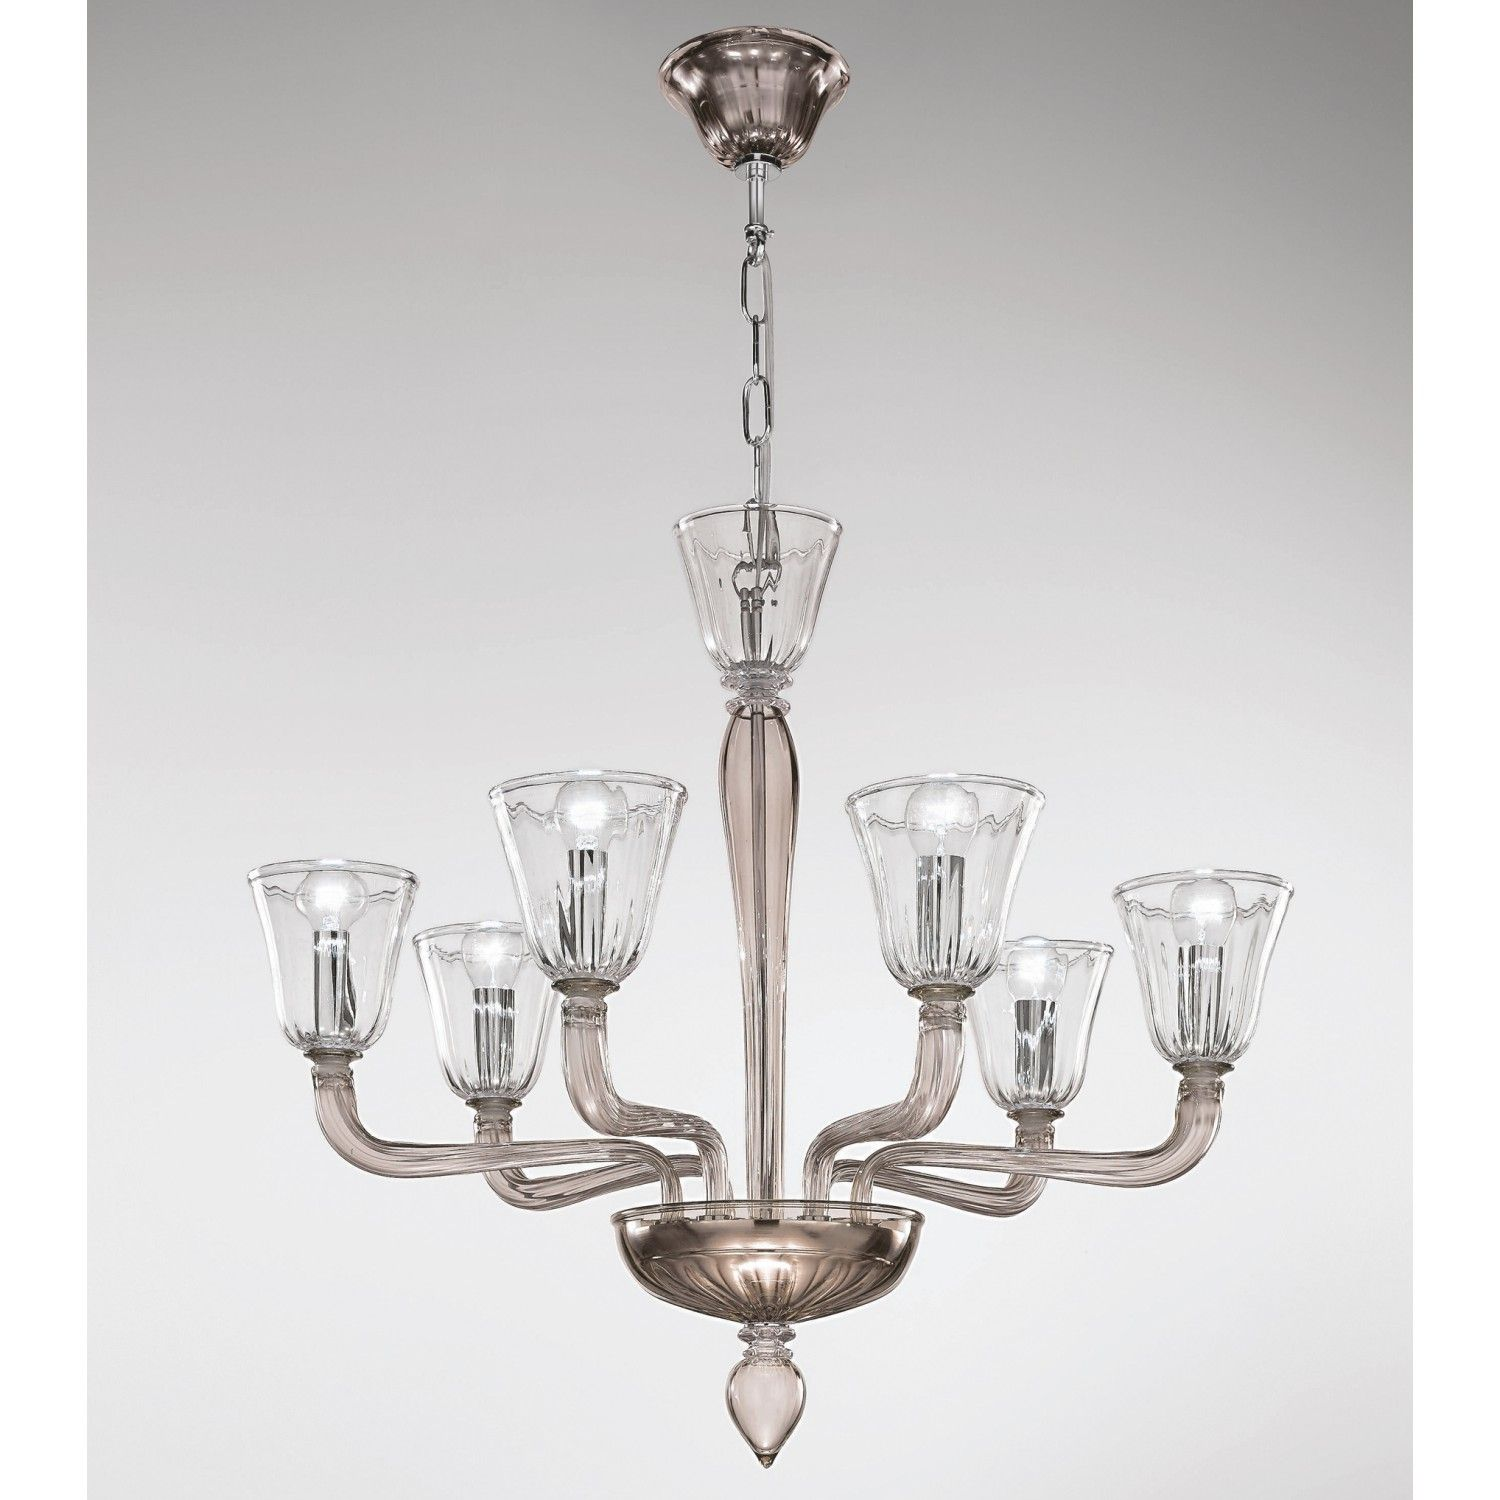 Topdomus Murano Gl Artistic Chandelier 301187 6 Lights Directly From Italy